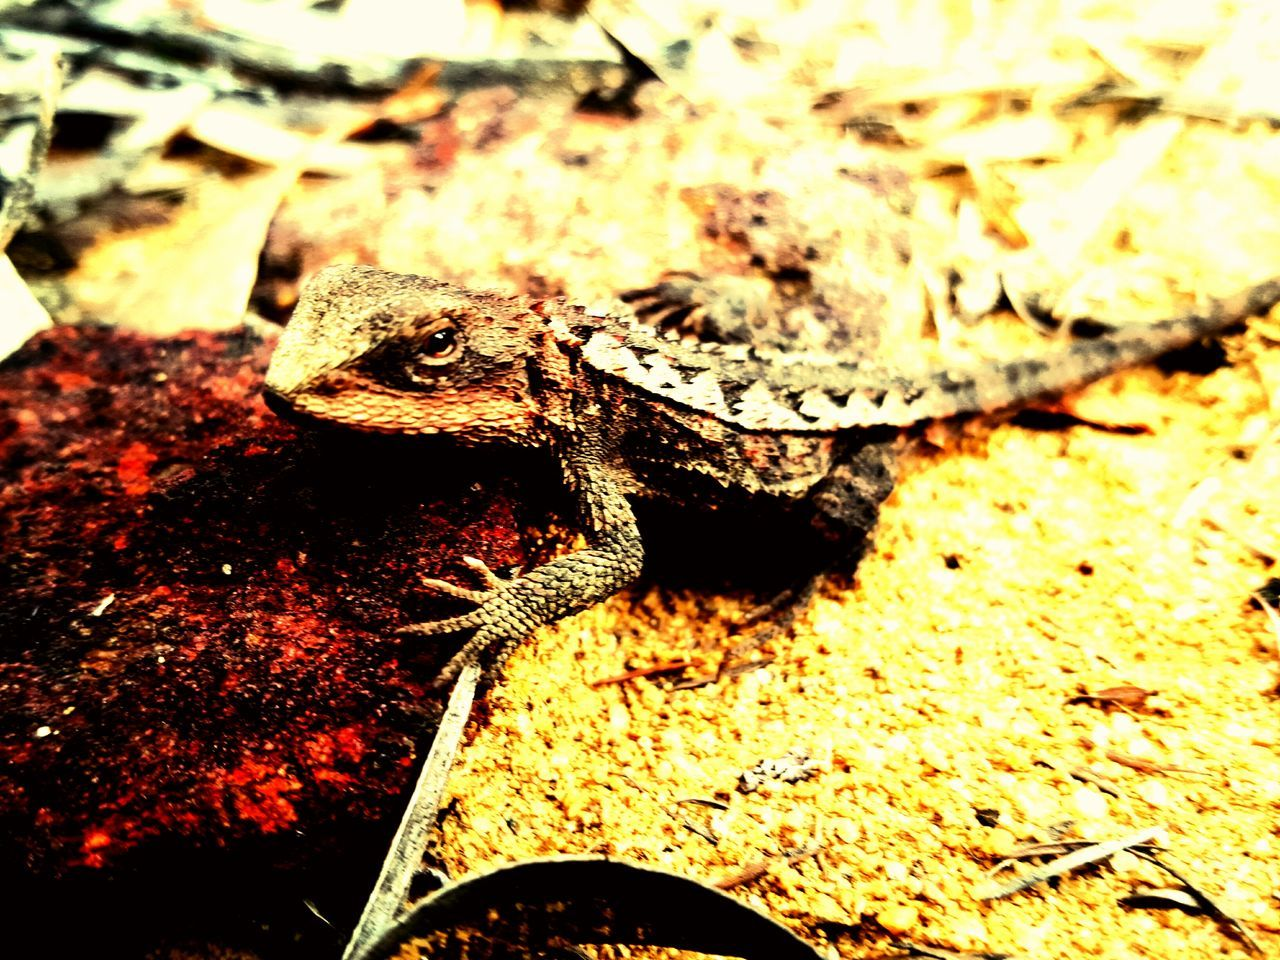 animals in the wild, animal themes, one animal, reptile, animal wildlife, no people, close-up, bearded dragon, outdoors, nature, day